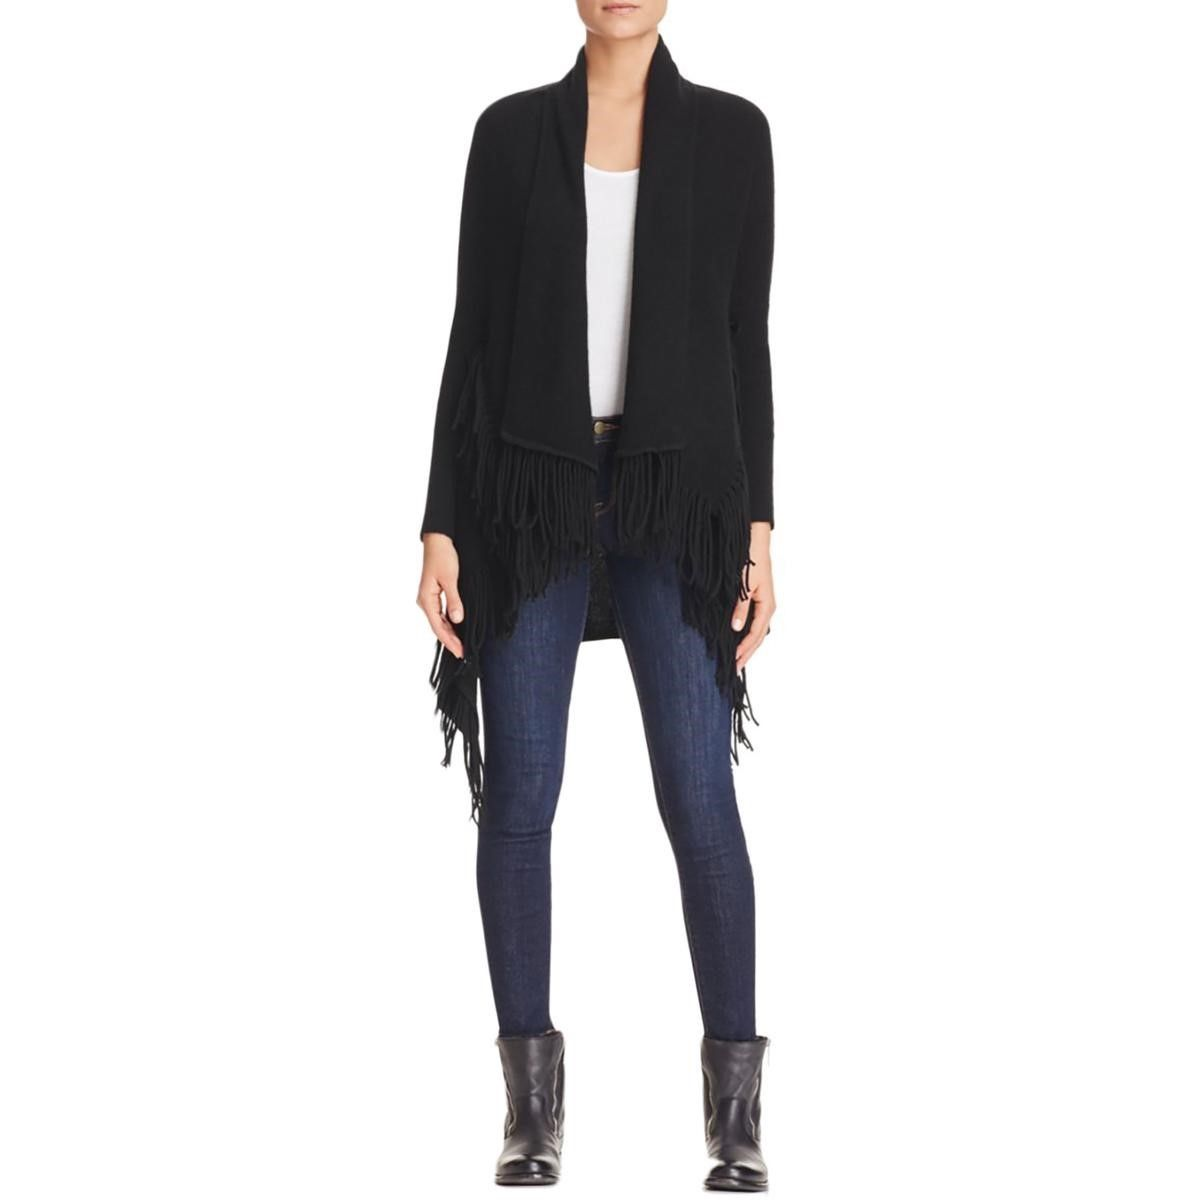 C by Bloomingdales Cashmere & Wool Cardigan NWT